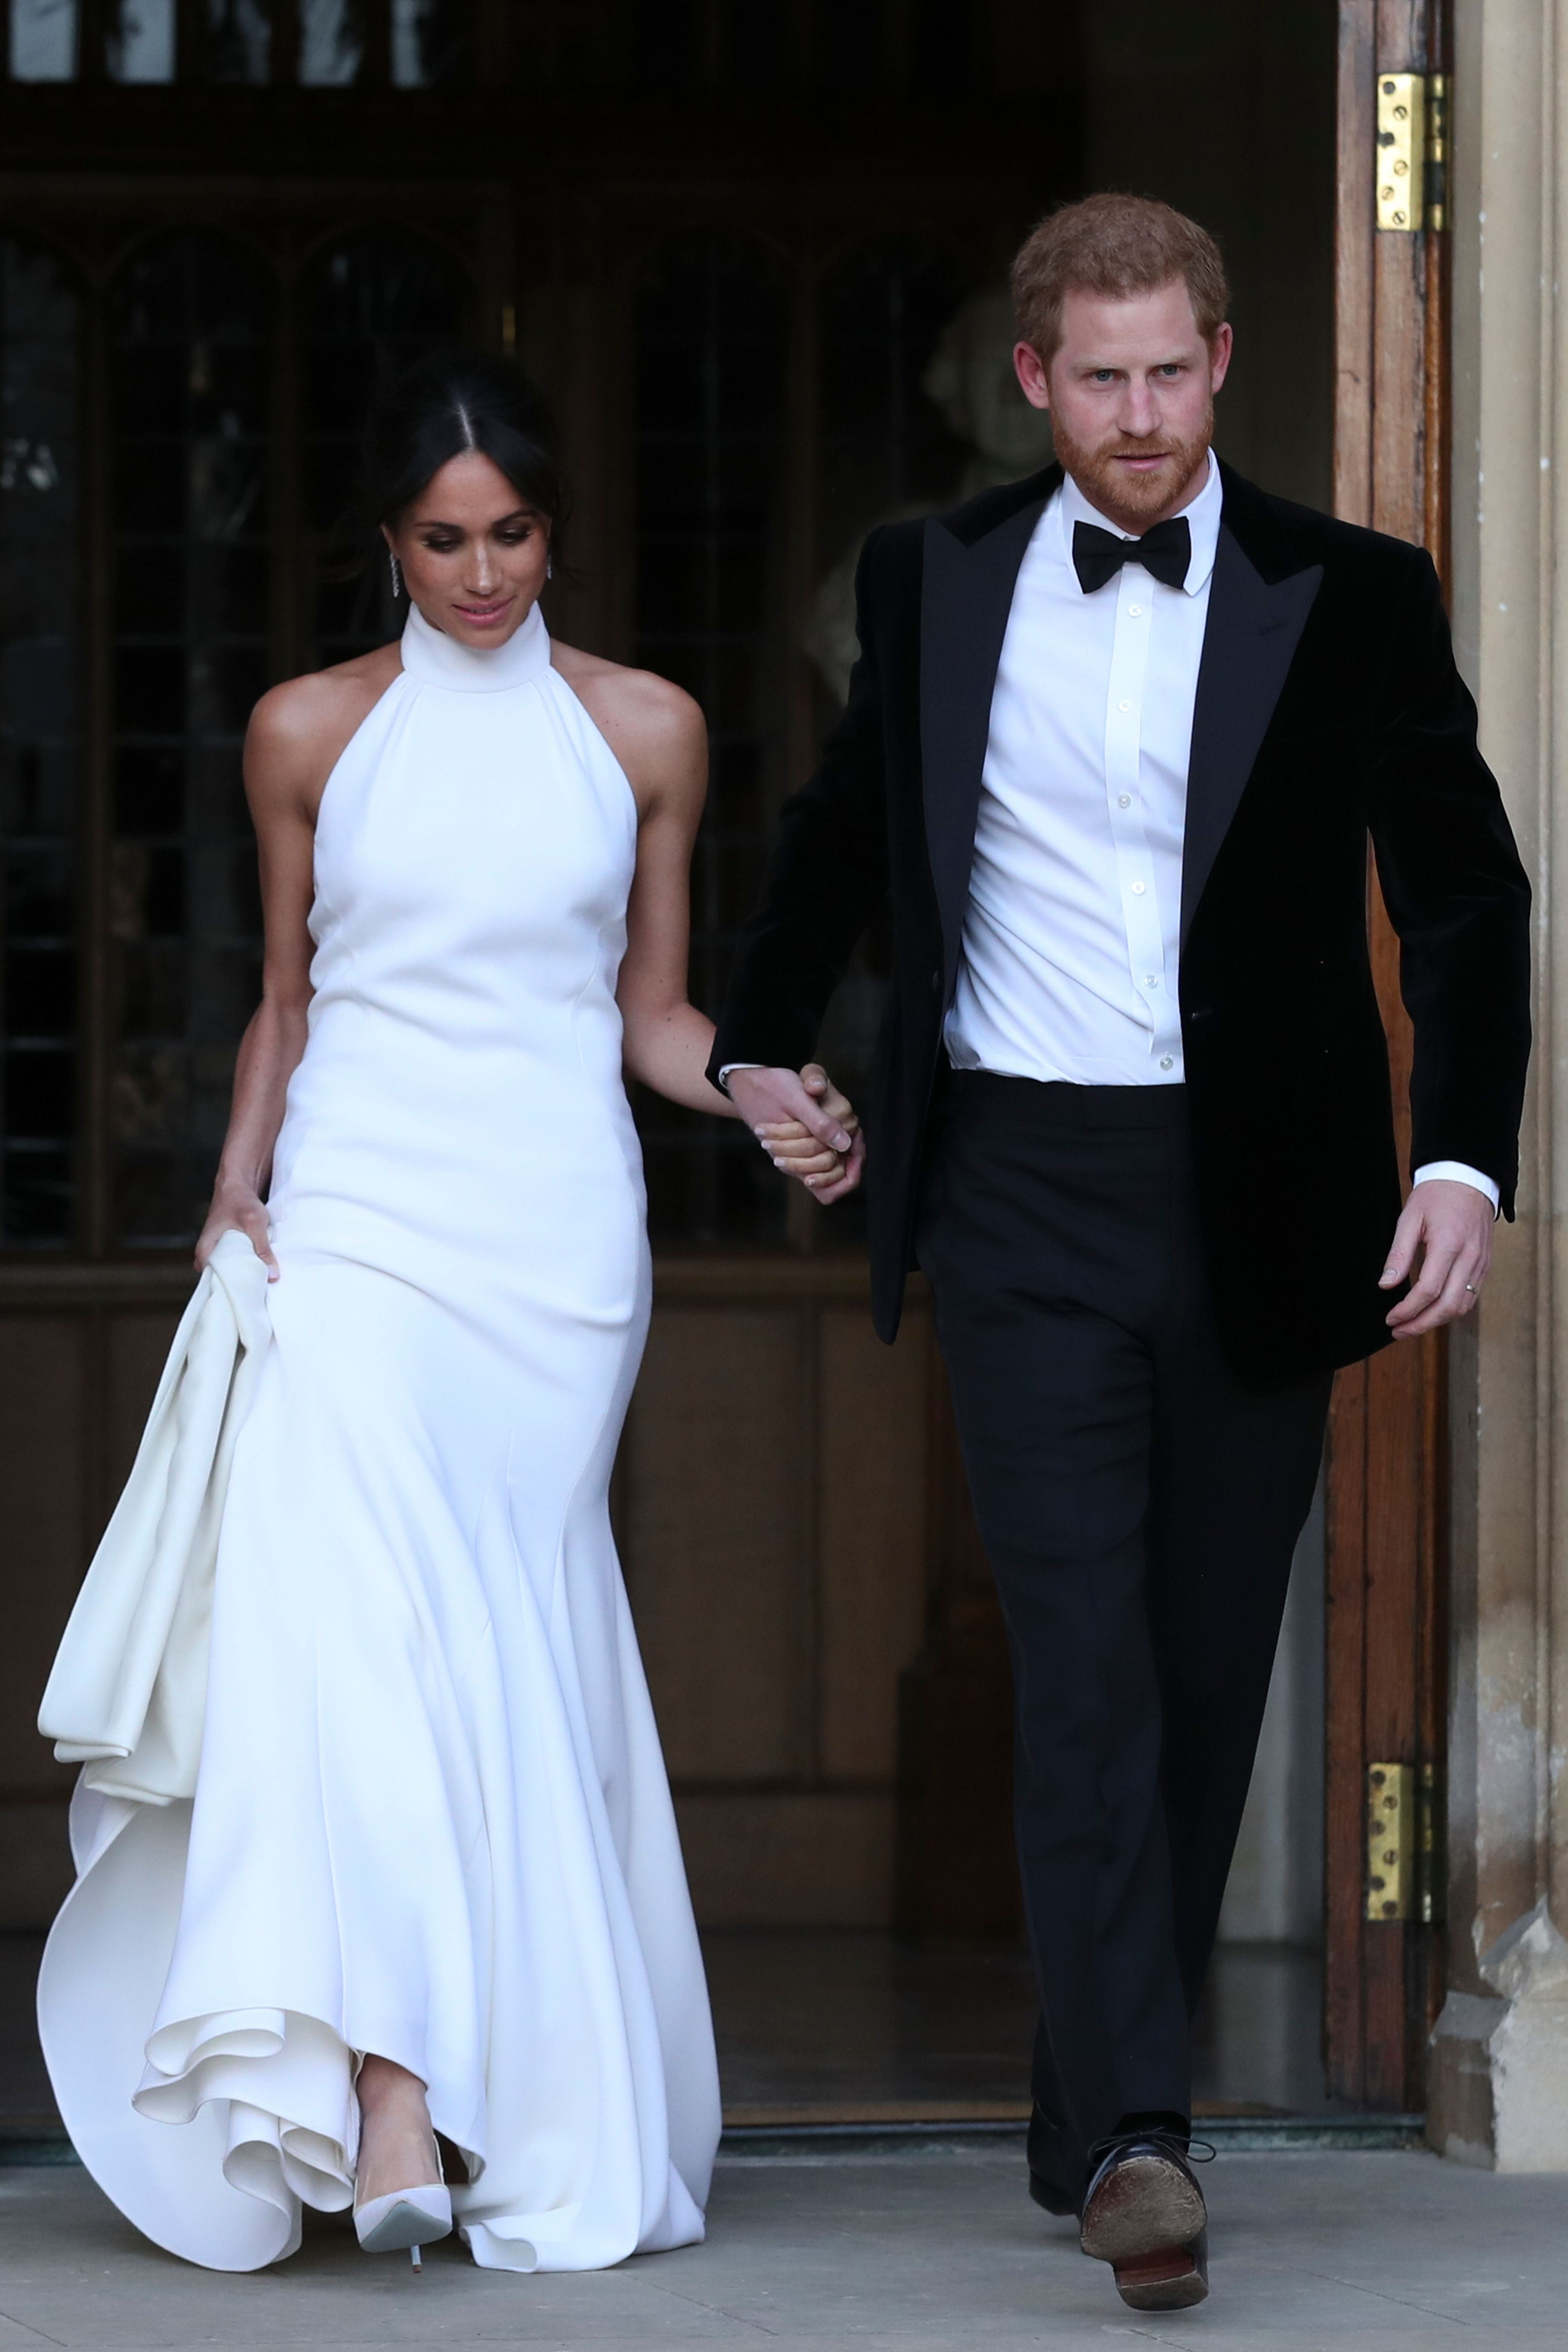 Meghan Markle Prince Harry Second Look Royal Wedding 2018